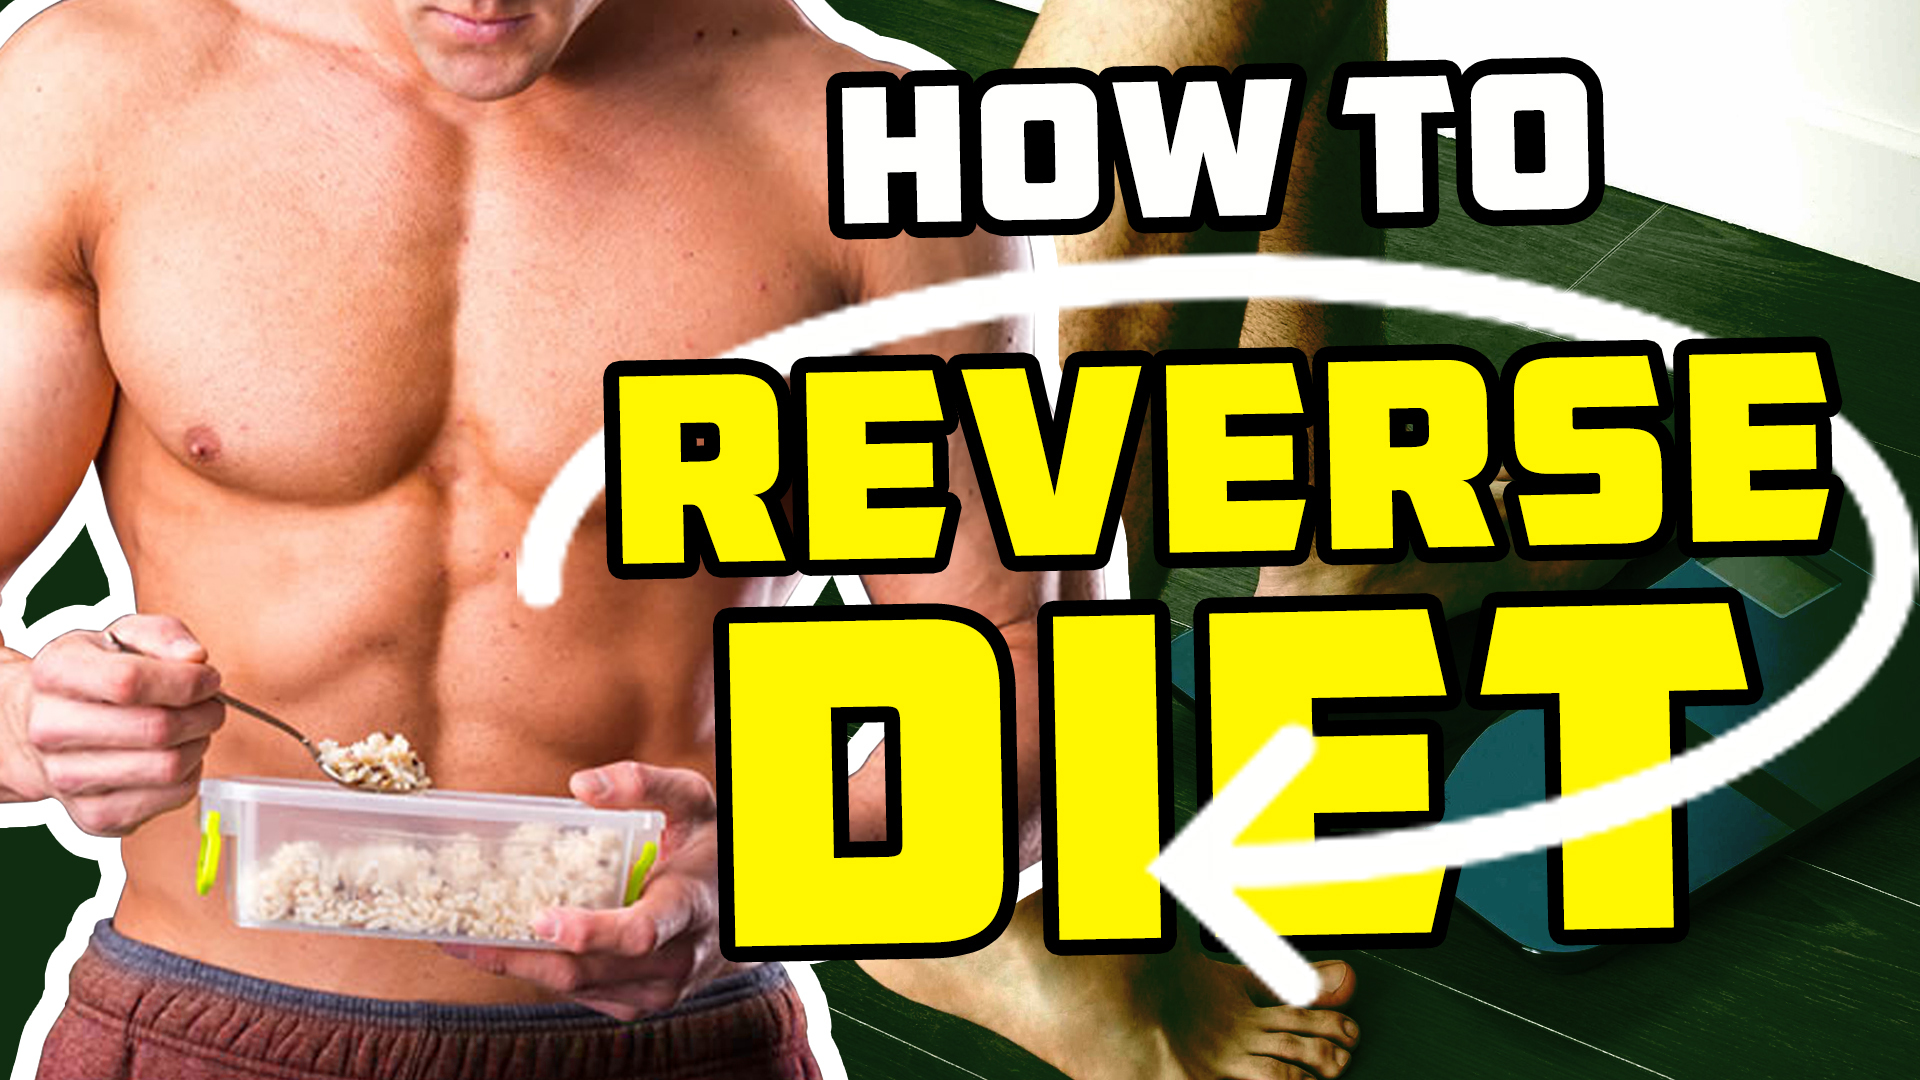 How To Reverse Diet – Comprehensive Guide To Prevent Fat Rebound After Cutting - YT Thumbnail